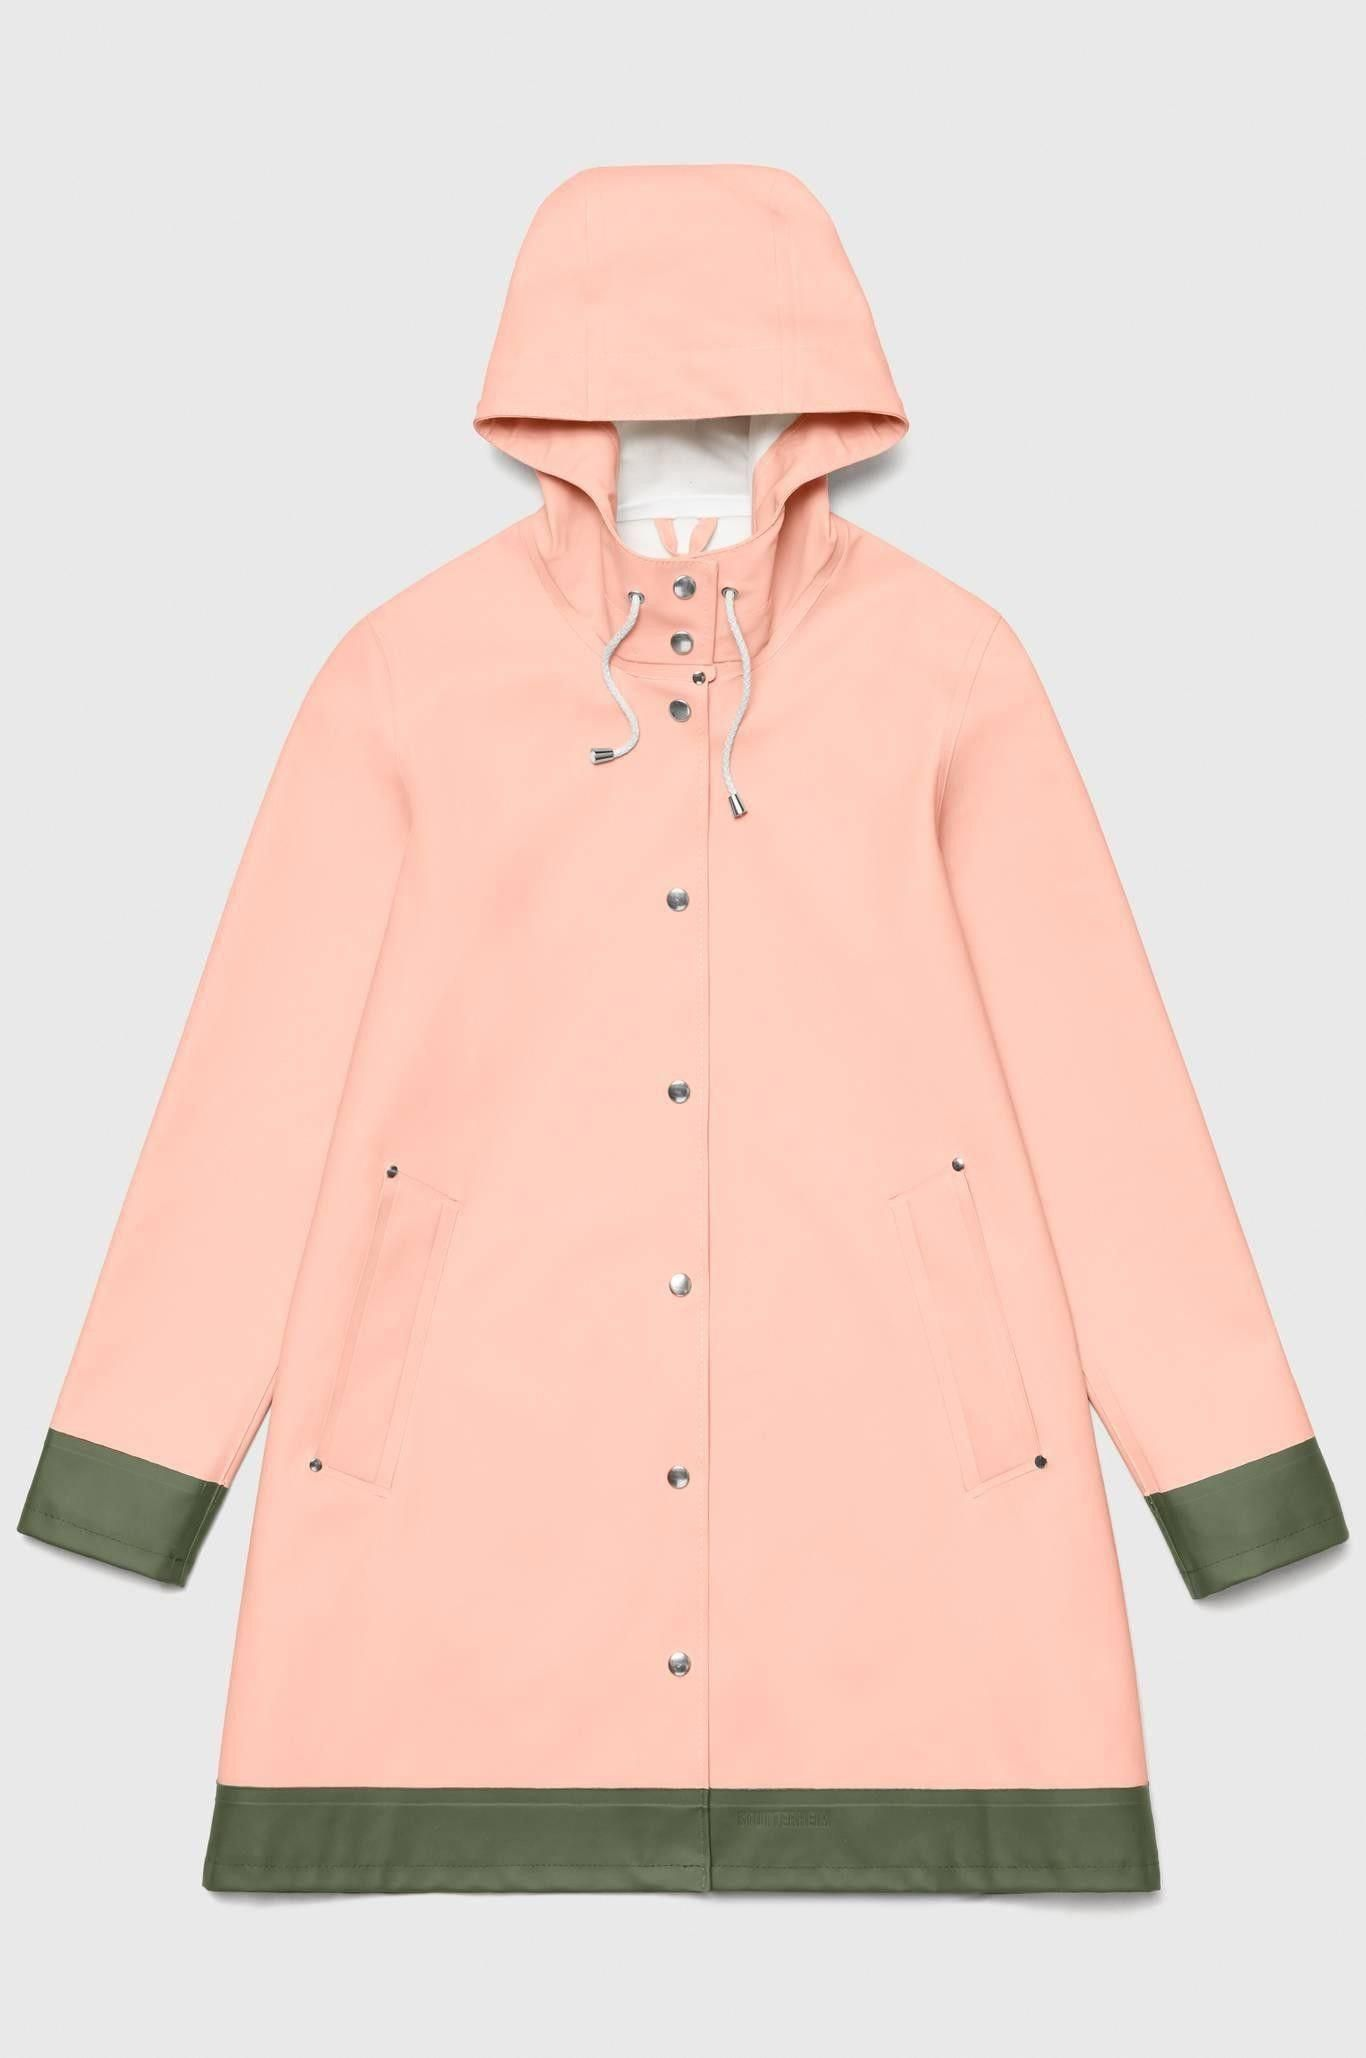 With a beautiful aline cut the mosebacke raincoat for women is a